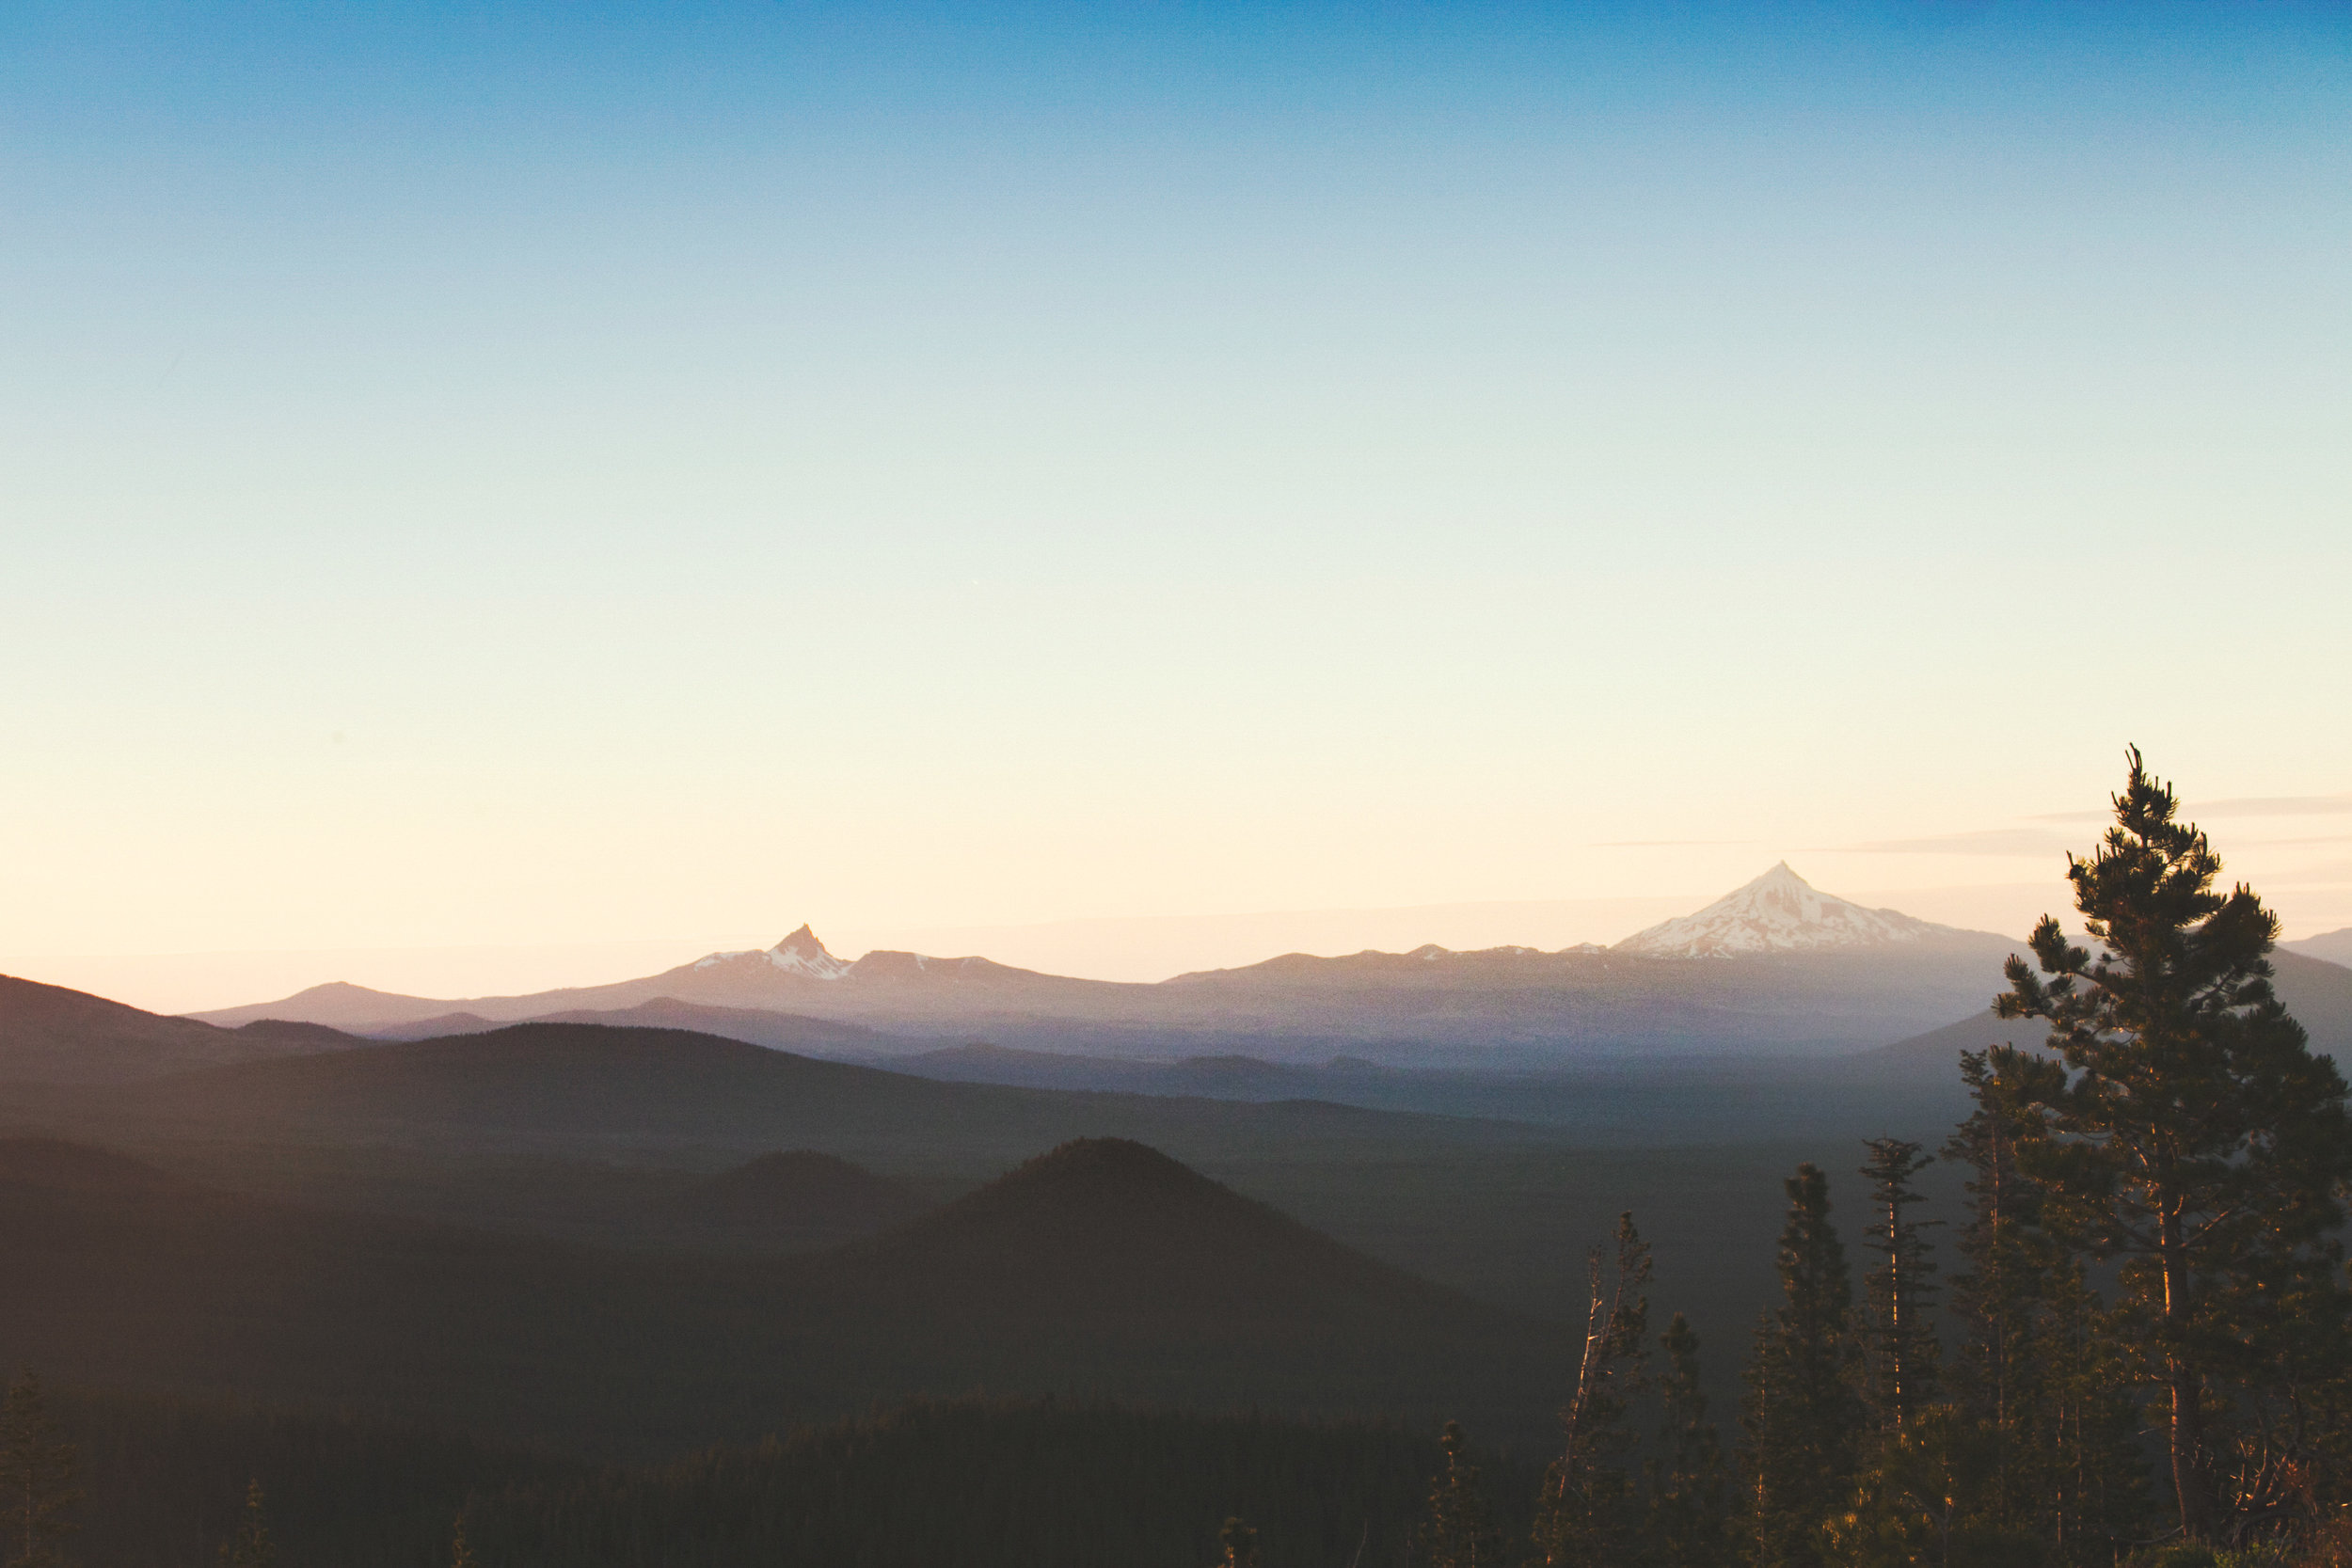 059Travel_Adventure_Outdoor_Photography_Outlive_Creative_Oregon_Stars_Night_Camping.jpg